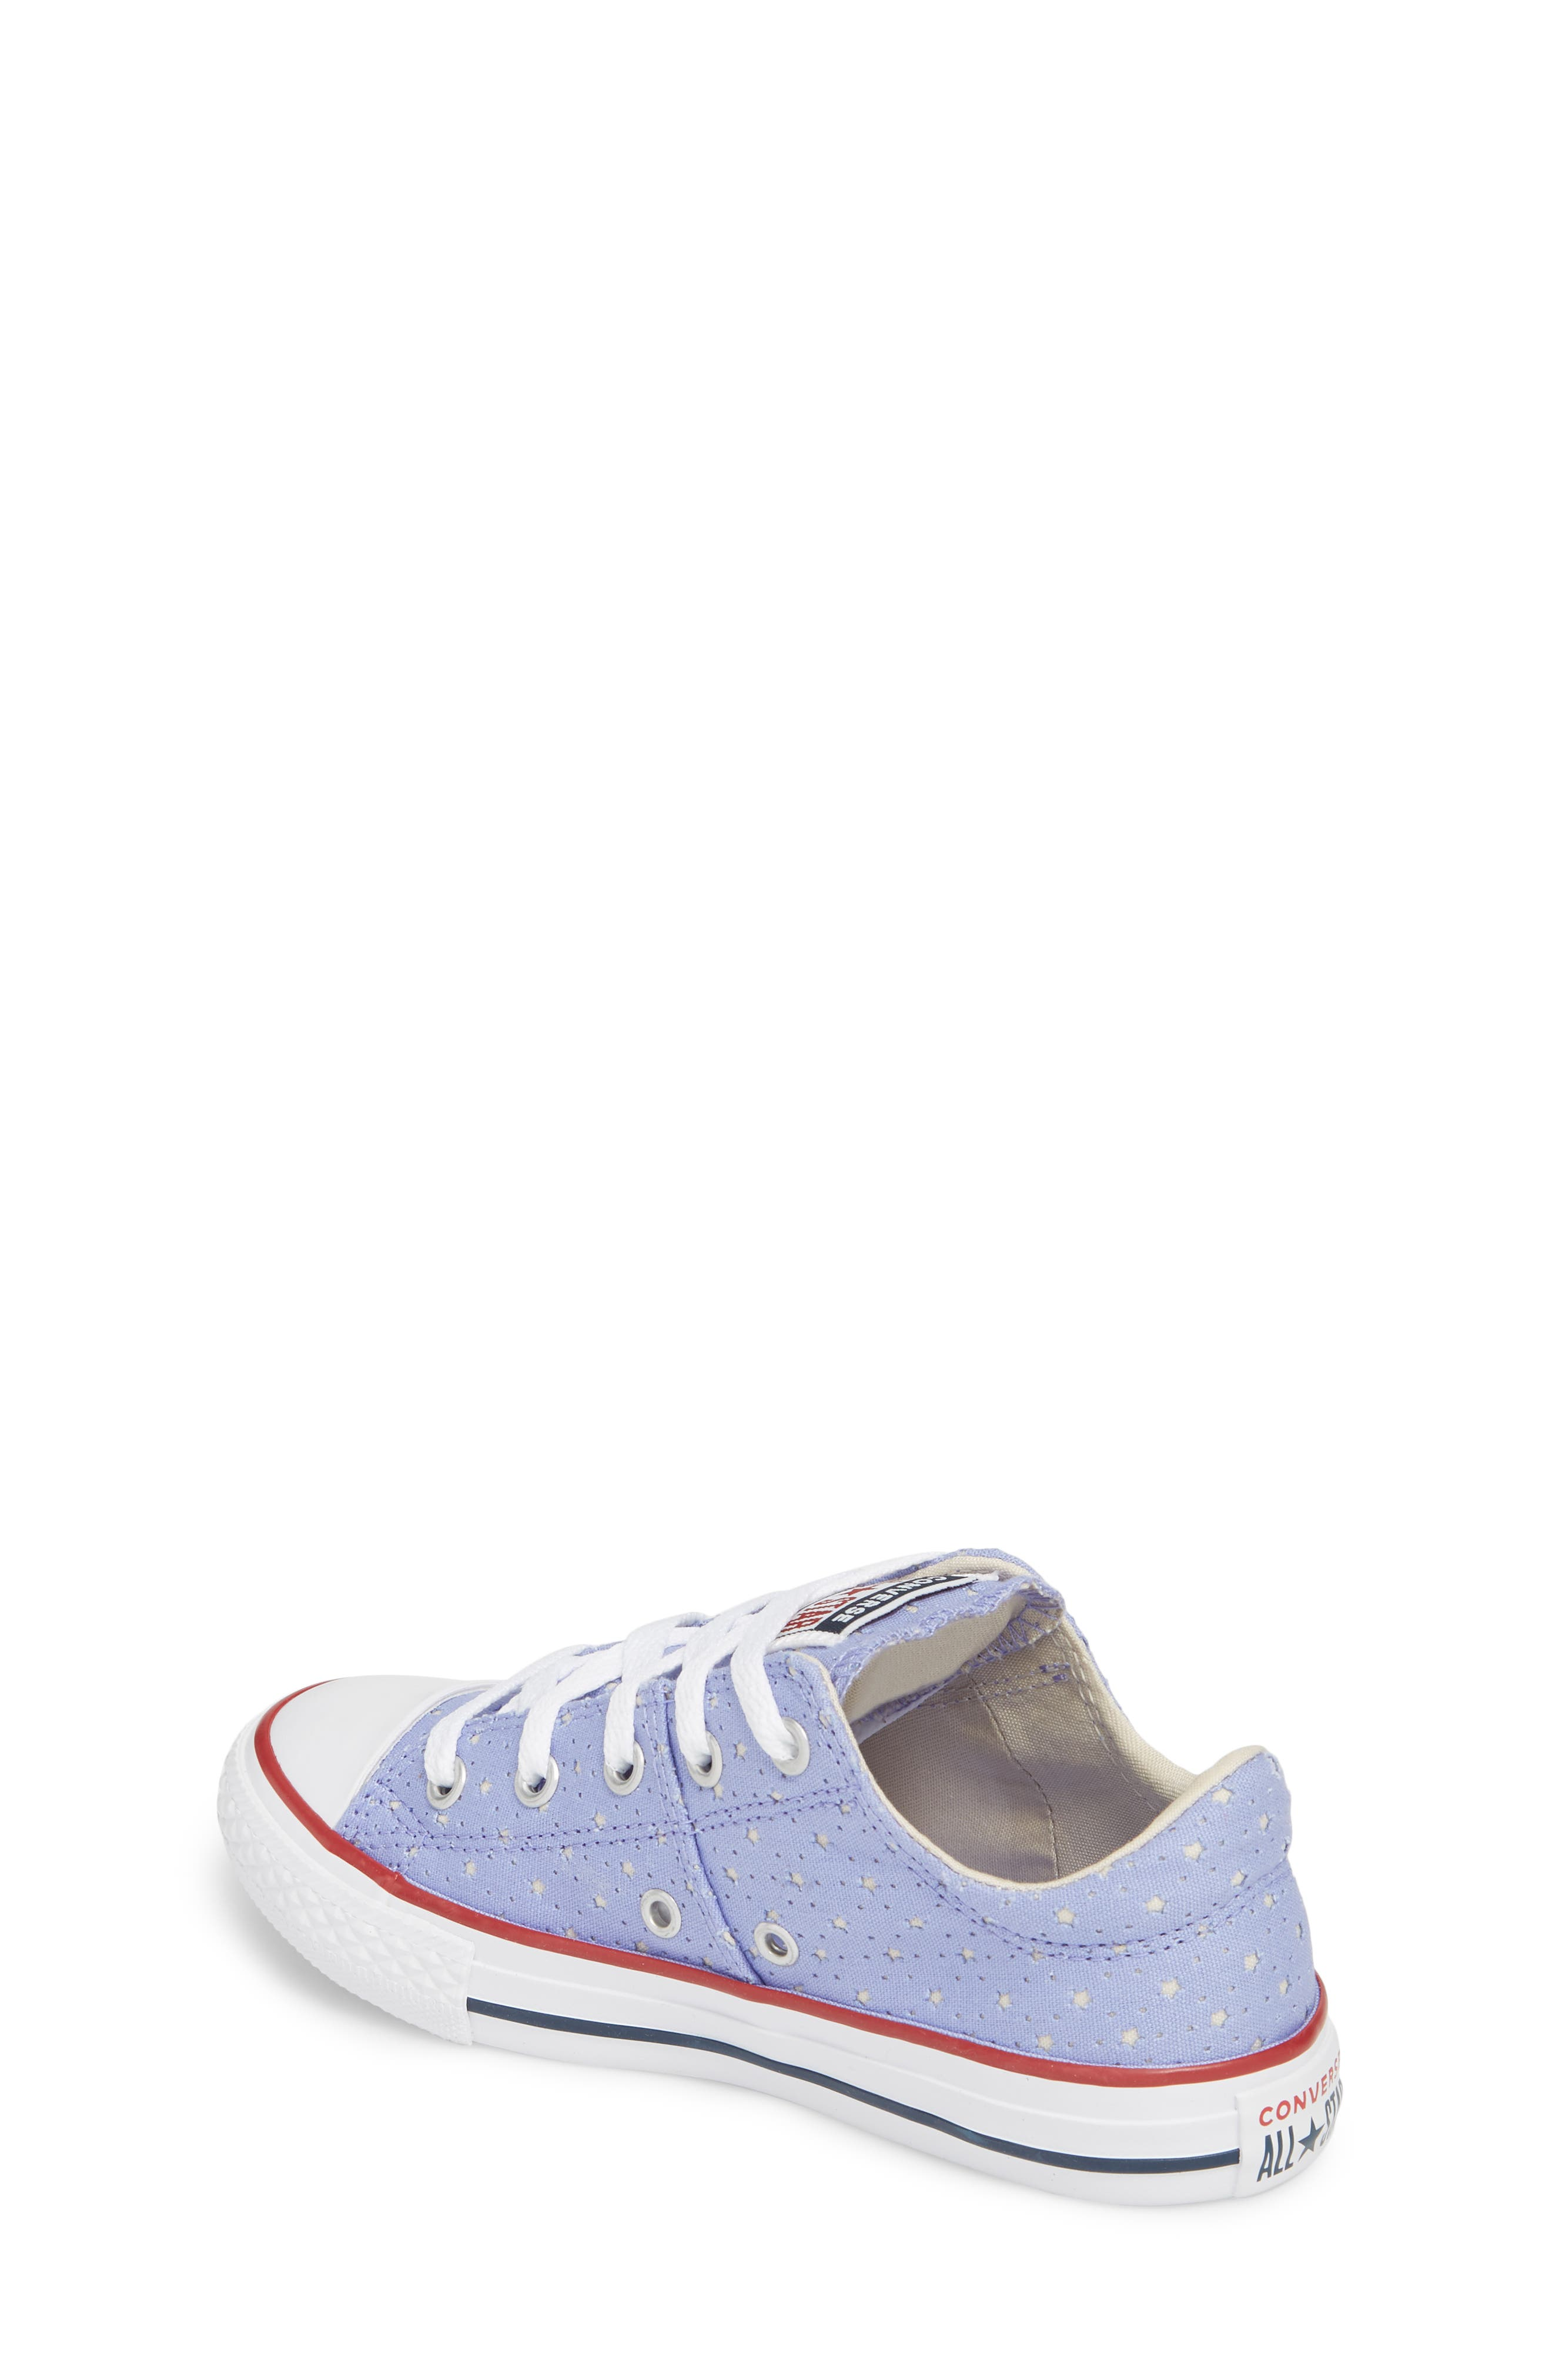 Chuck Taylor<sup>®</sup> All Star<sup>®</sup> Madison Sneaker,                             Alternate thumbnail 2, color,                             531